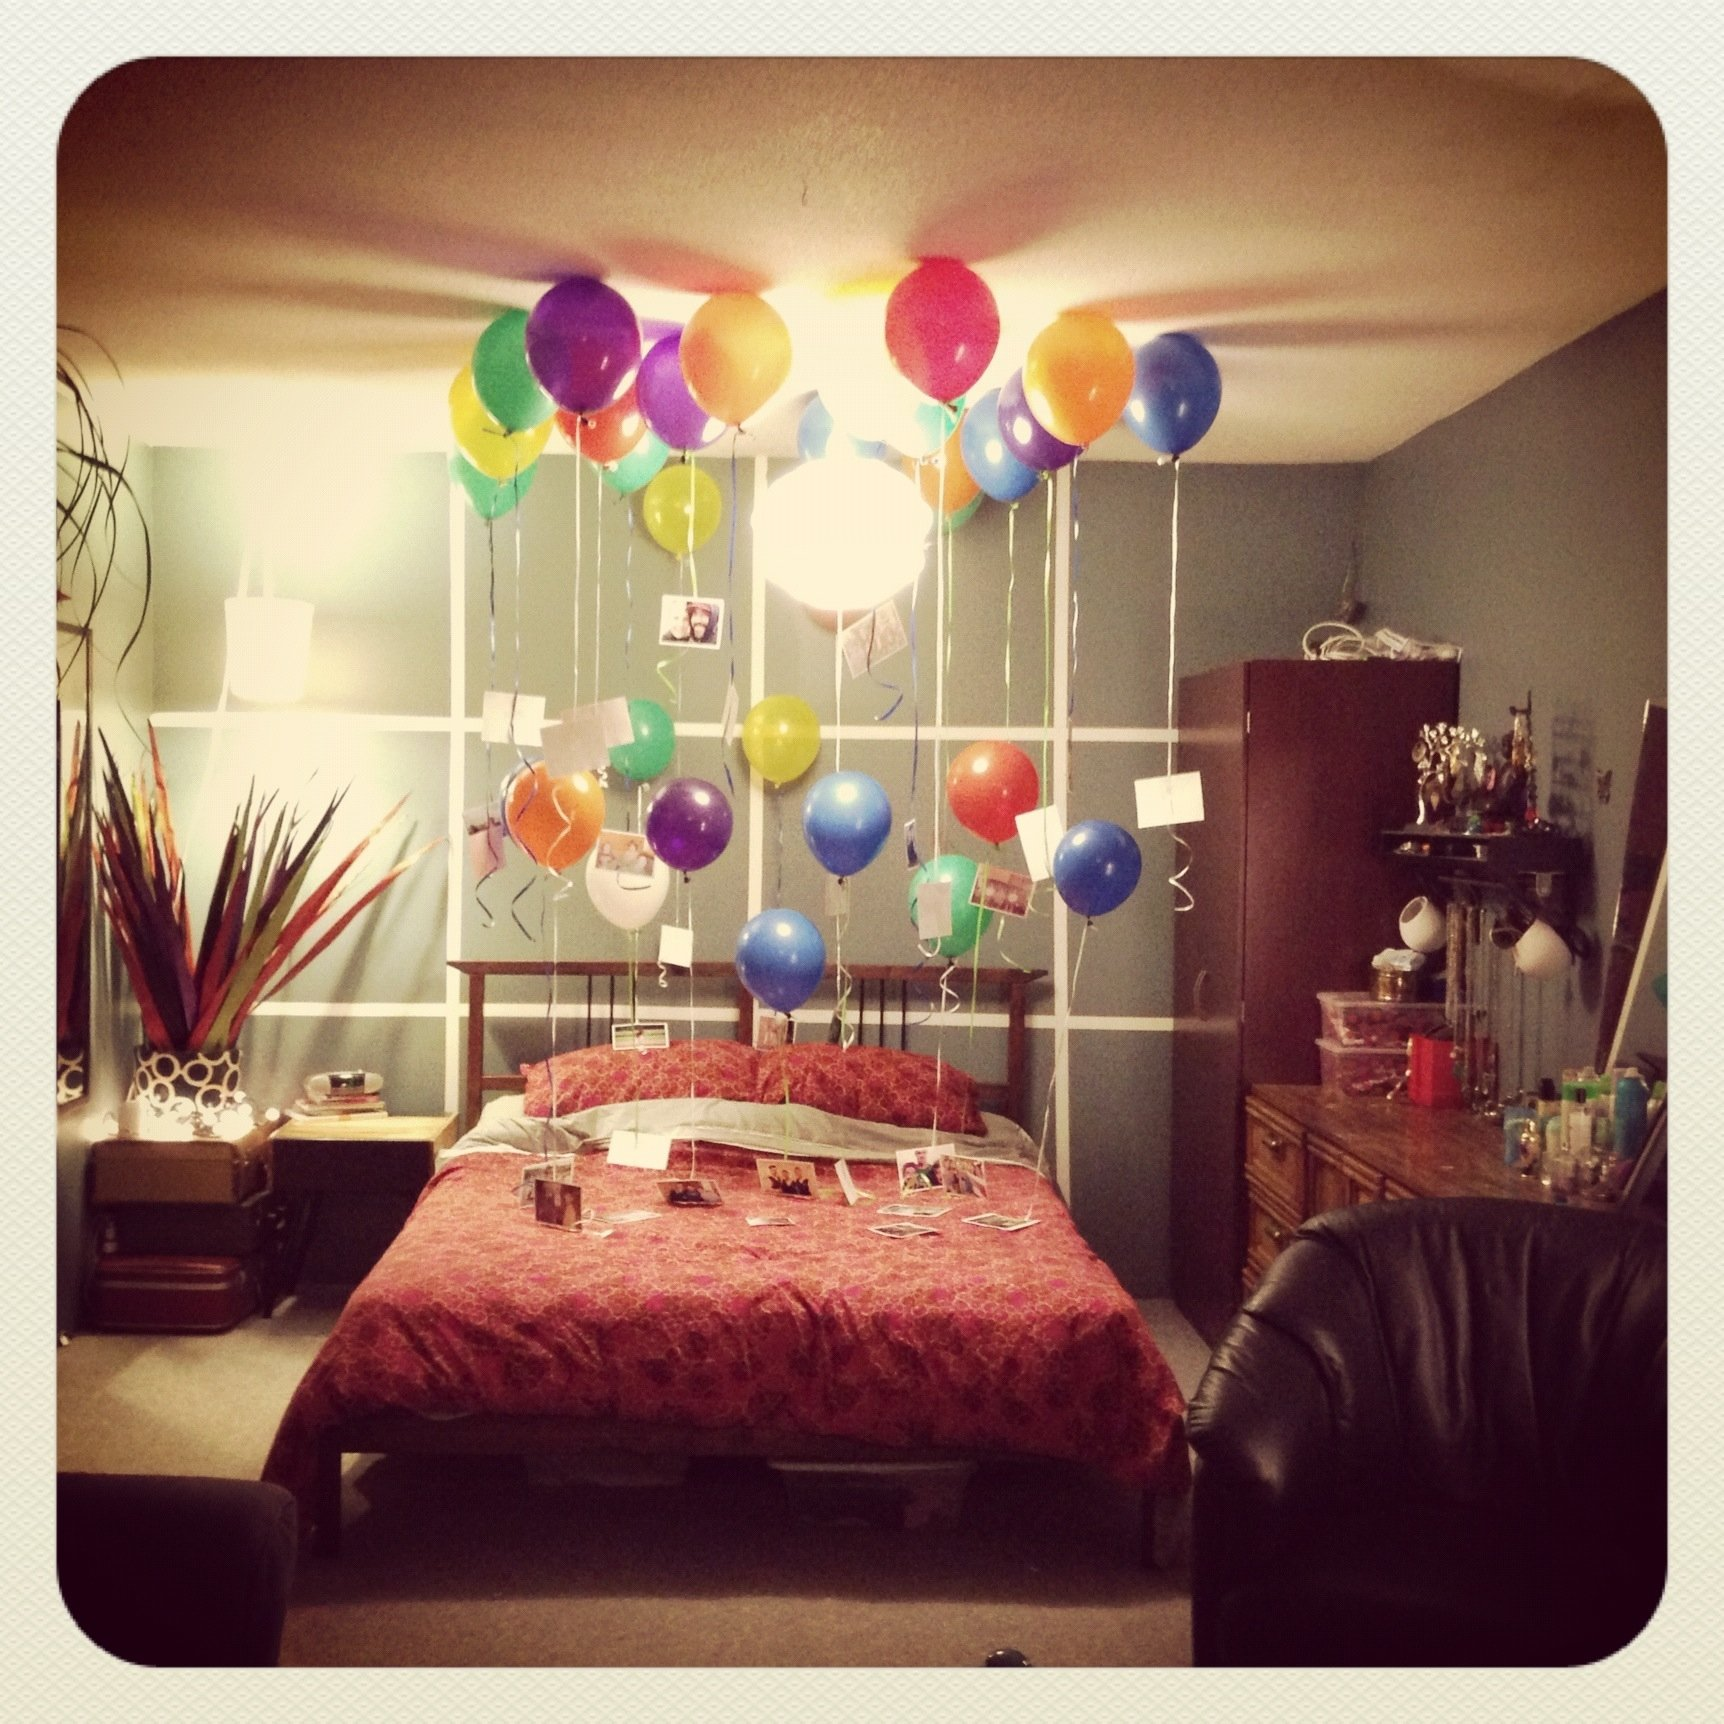 10 Most Recommended Romantic Ideas For Boyfriends Birthday birthday surprise for the boyfriend good ideas ya say